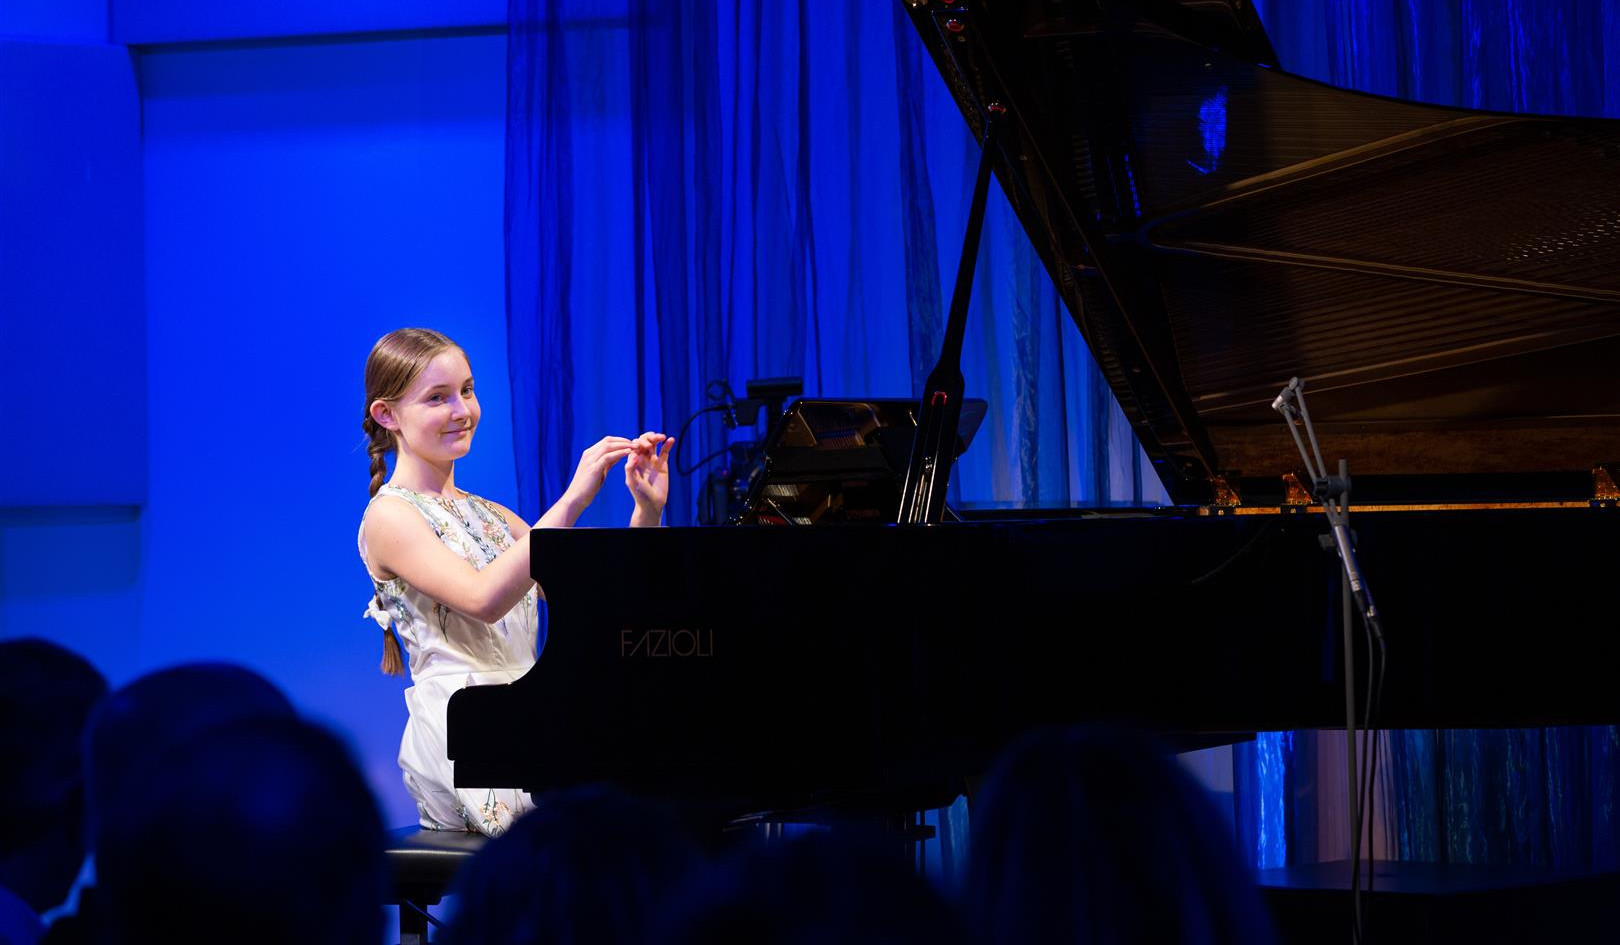 Janice Yi, courtesy of WQXR and The Gree